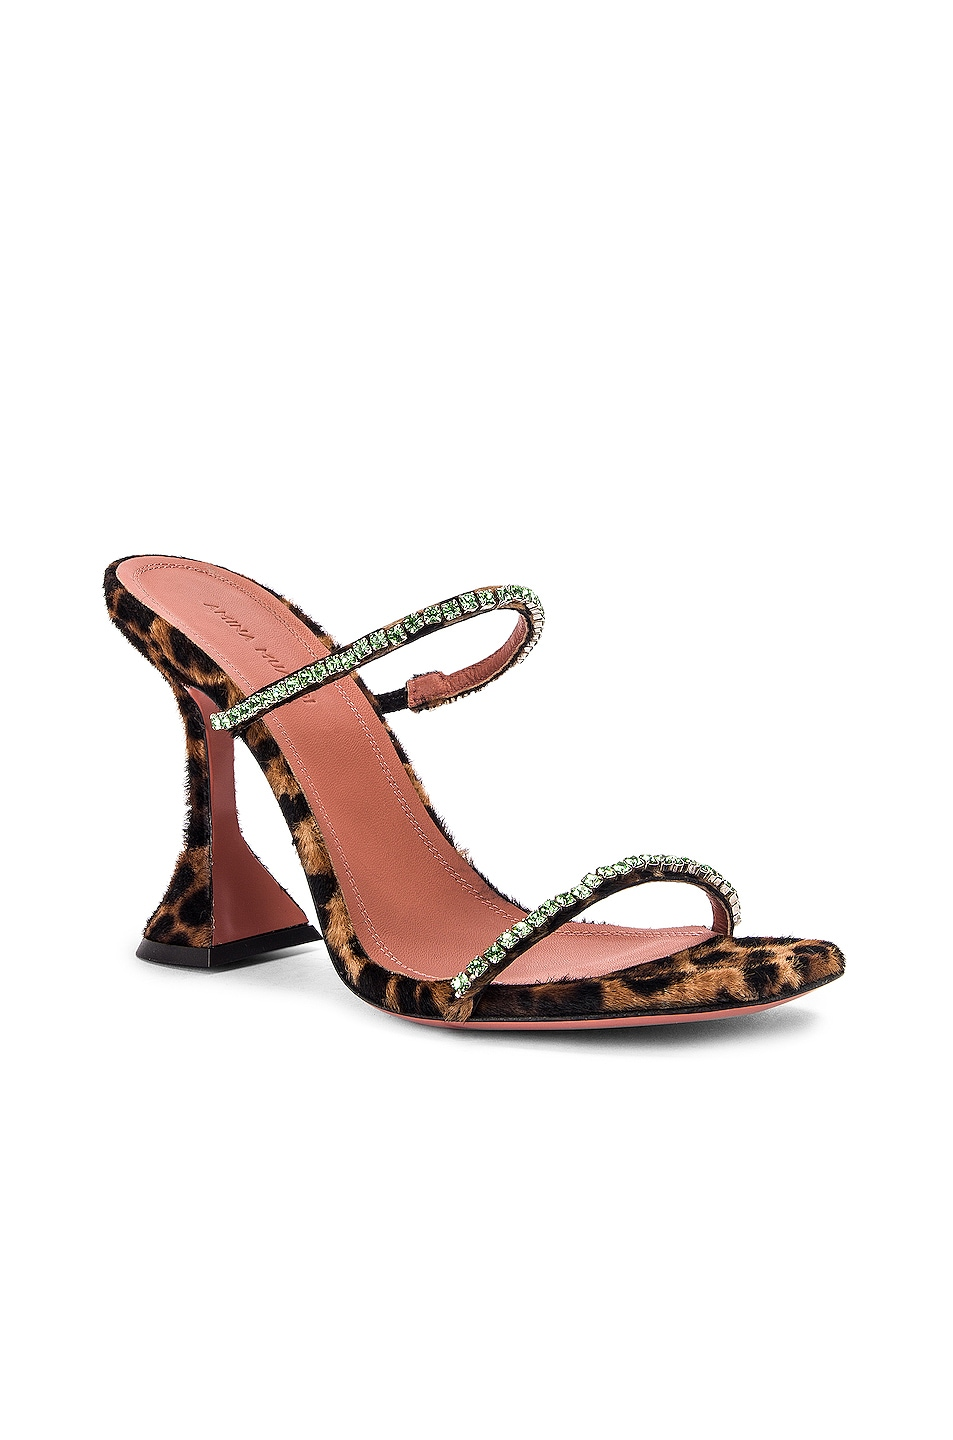 Image 2 of AMINA MUADDI Gilda Slipper in Leopard Pony & Green Strass